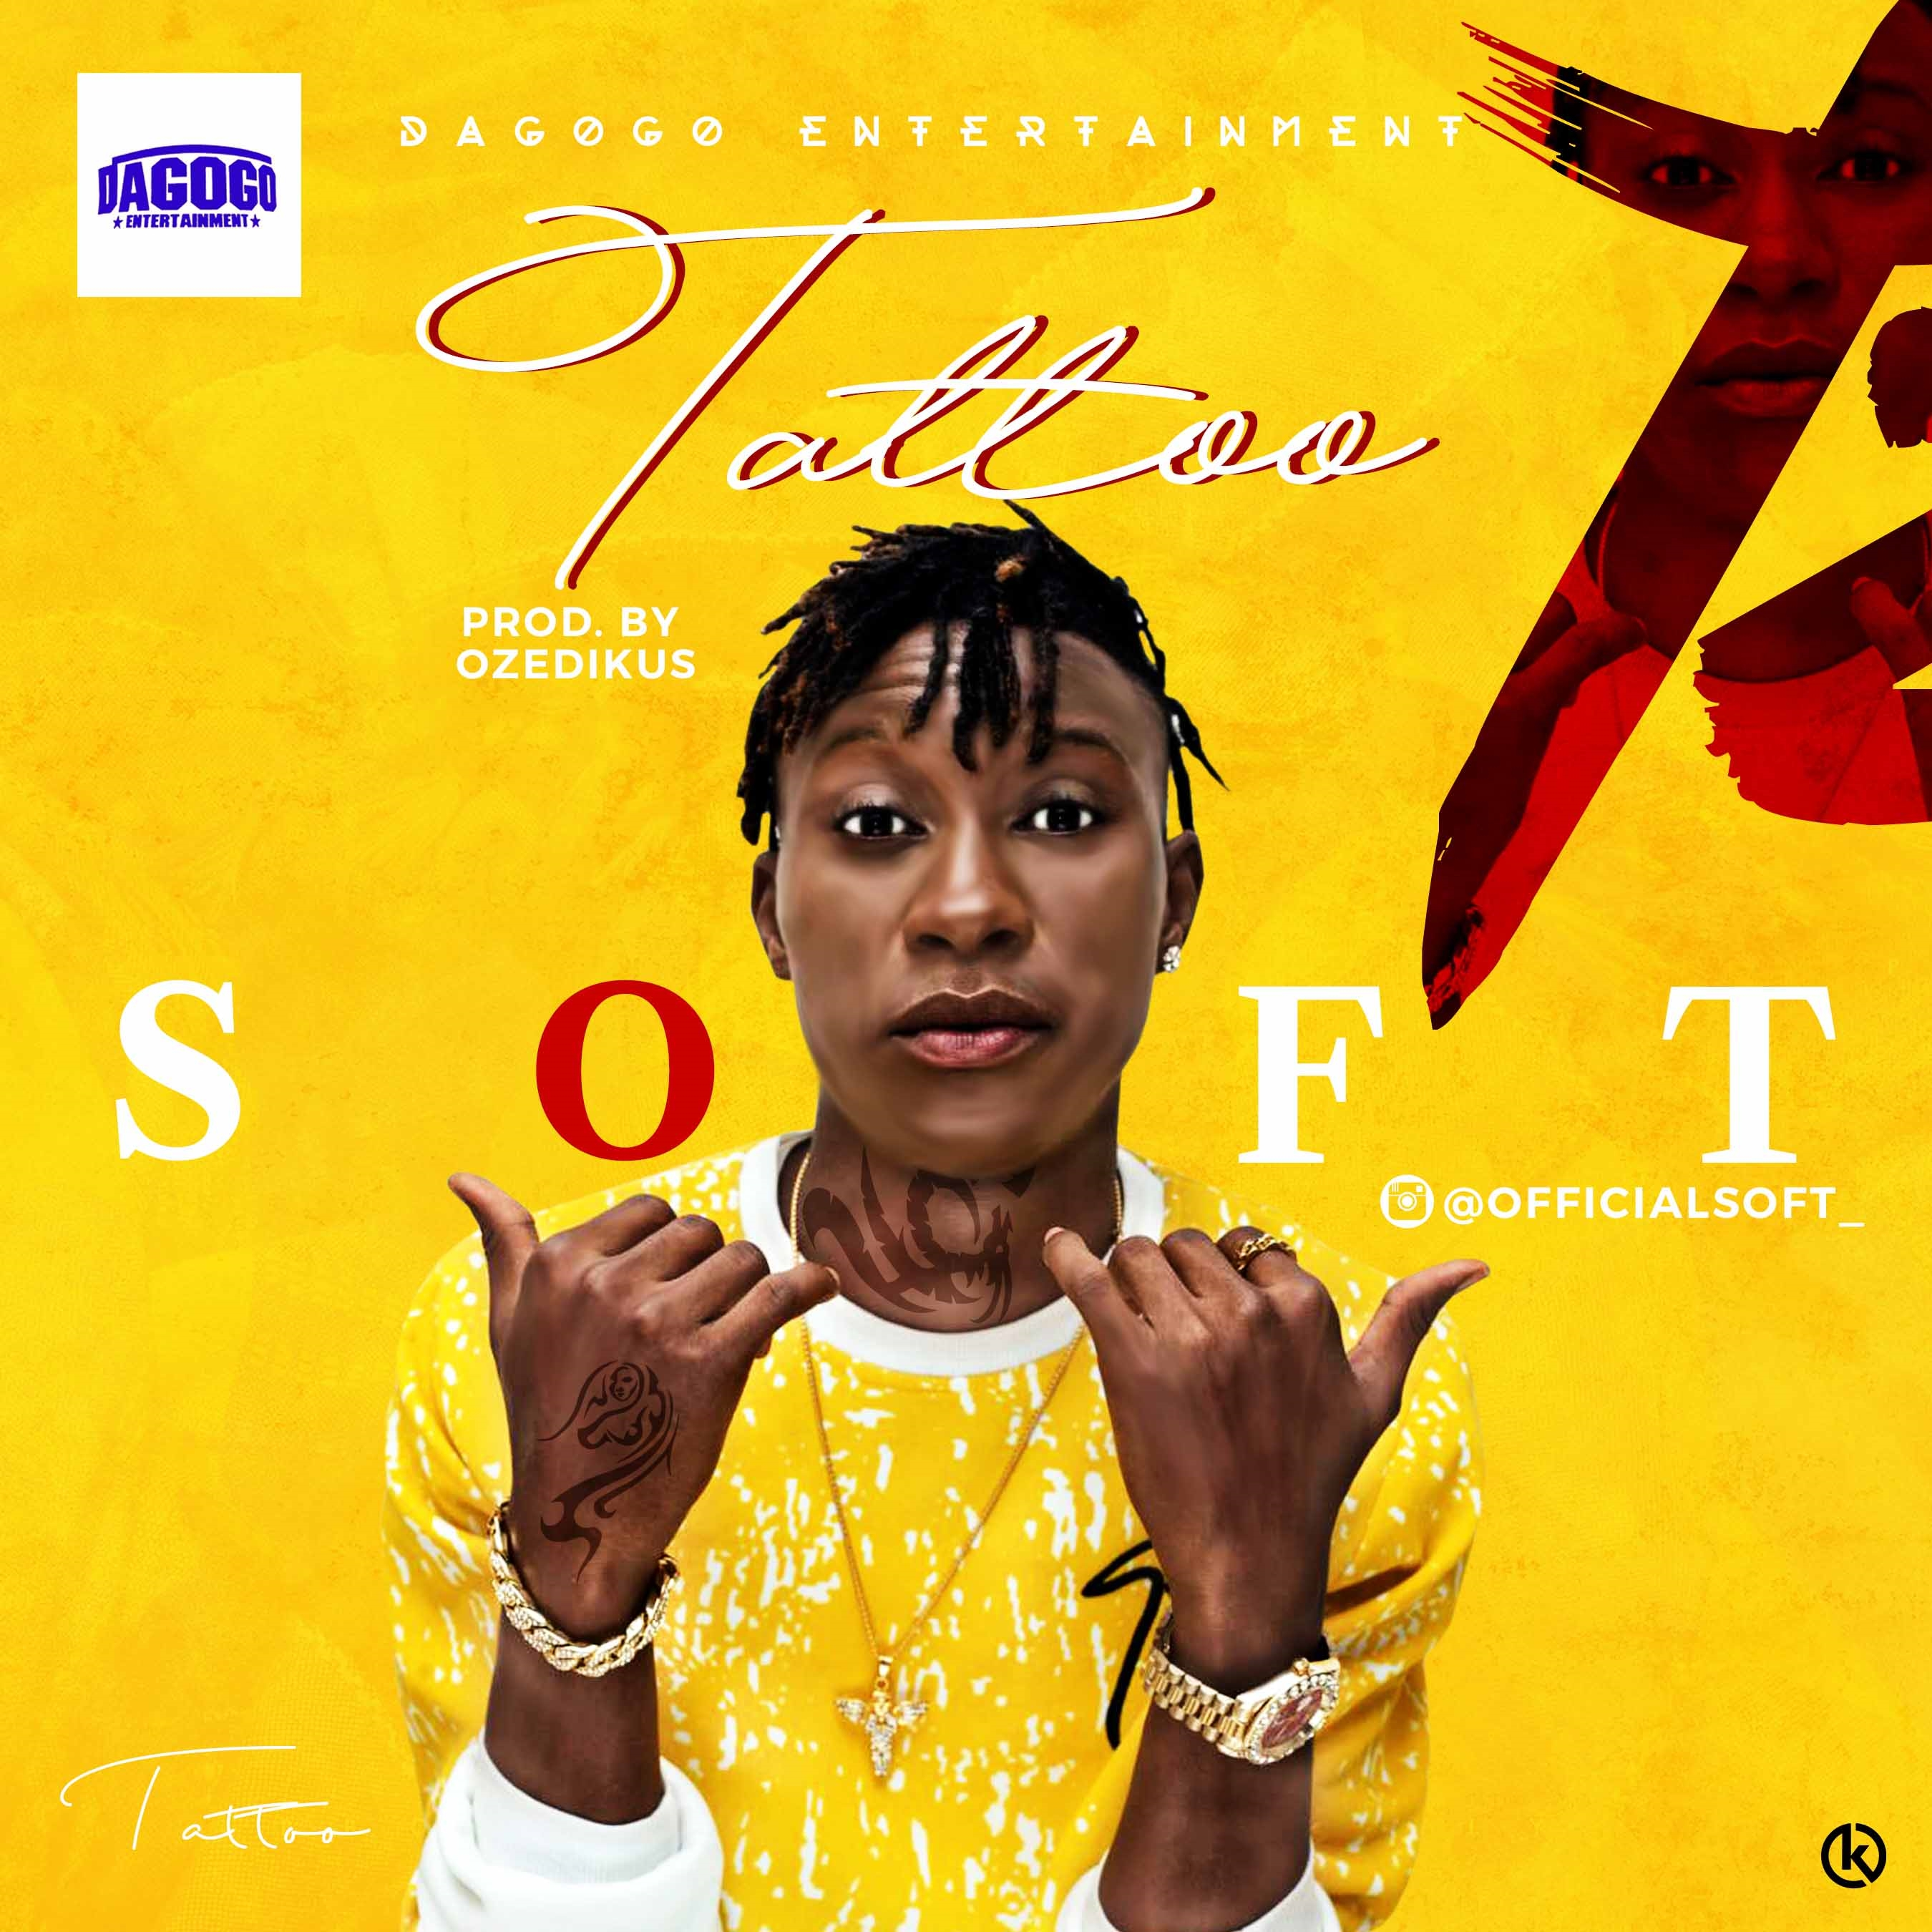 soft tattoo prod by ozedikus notjustok